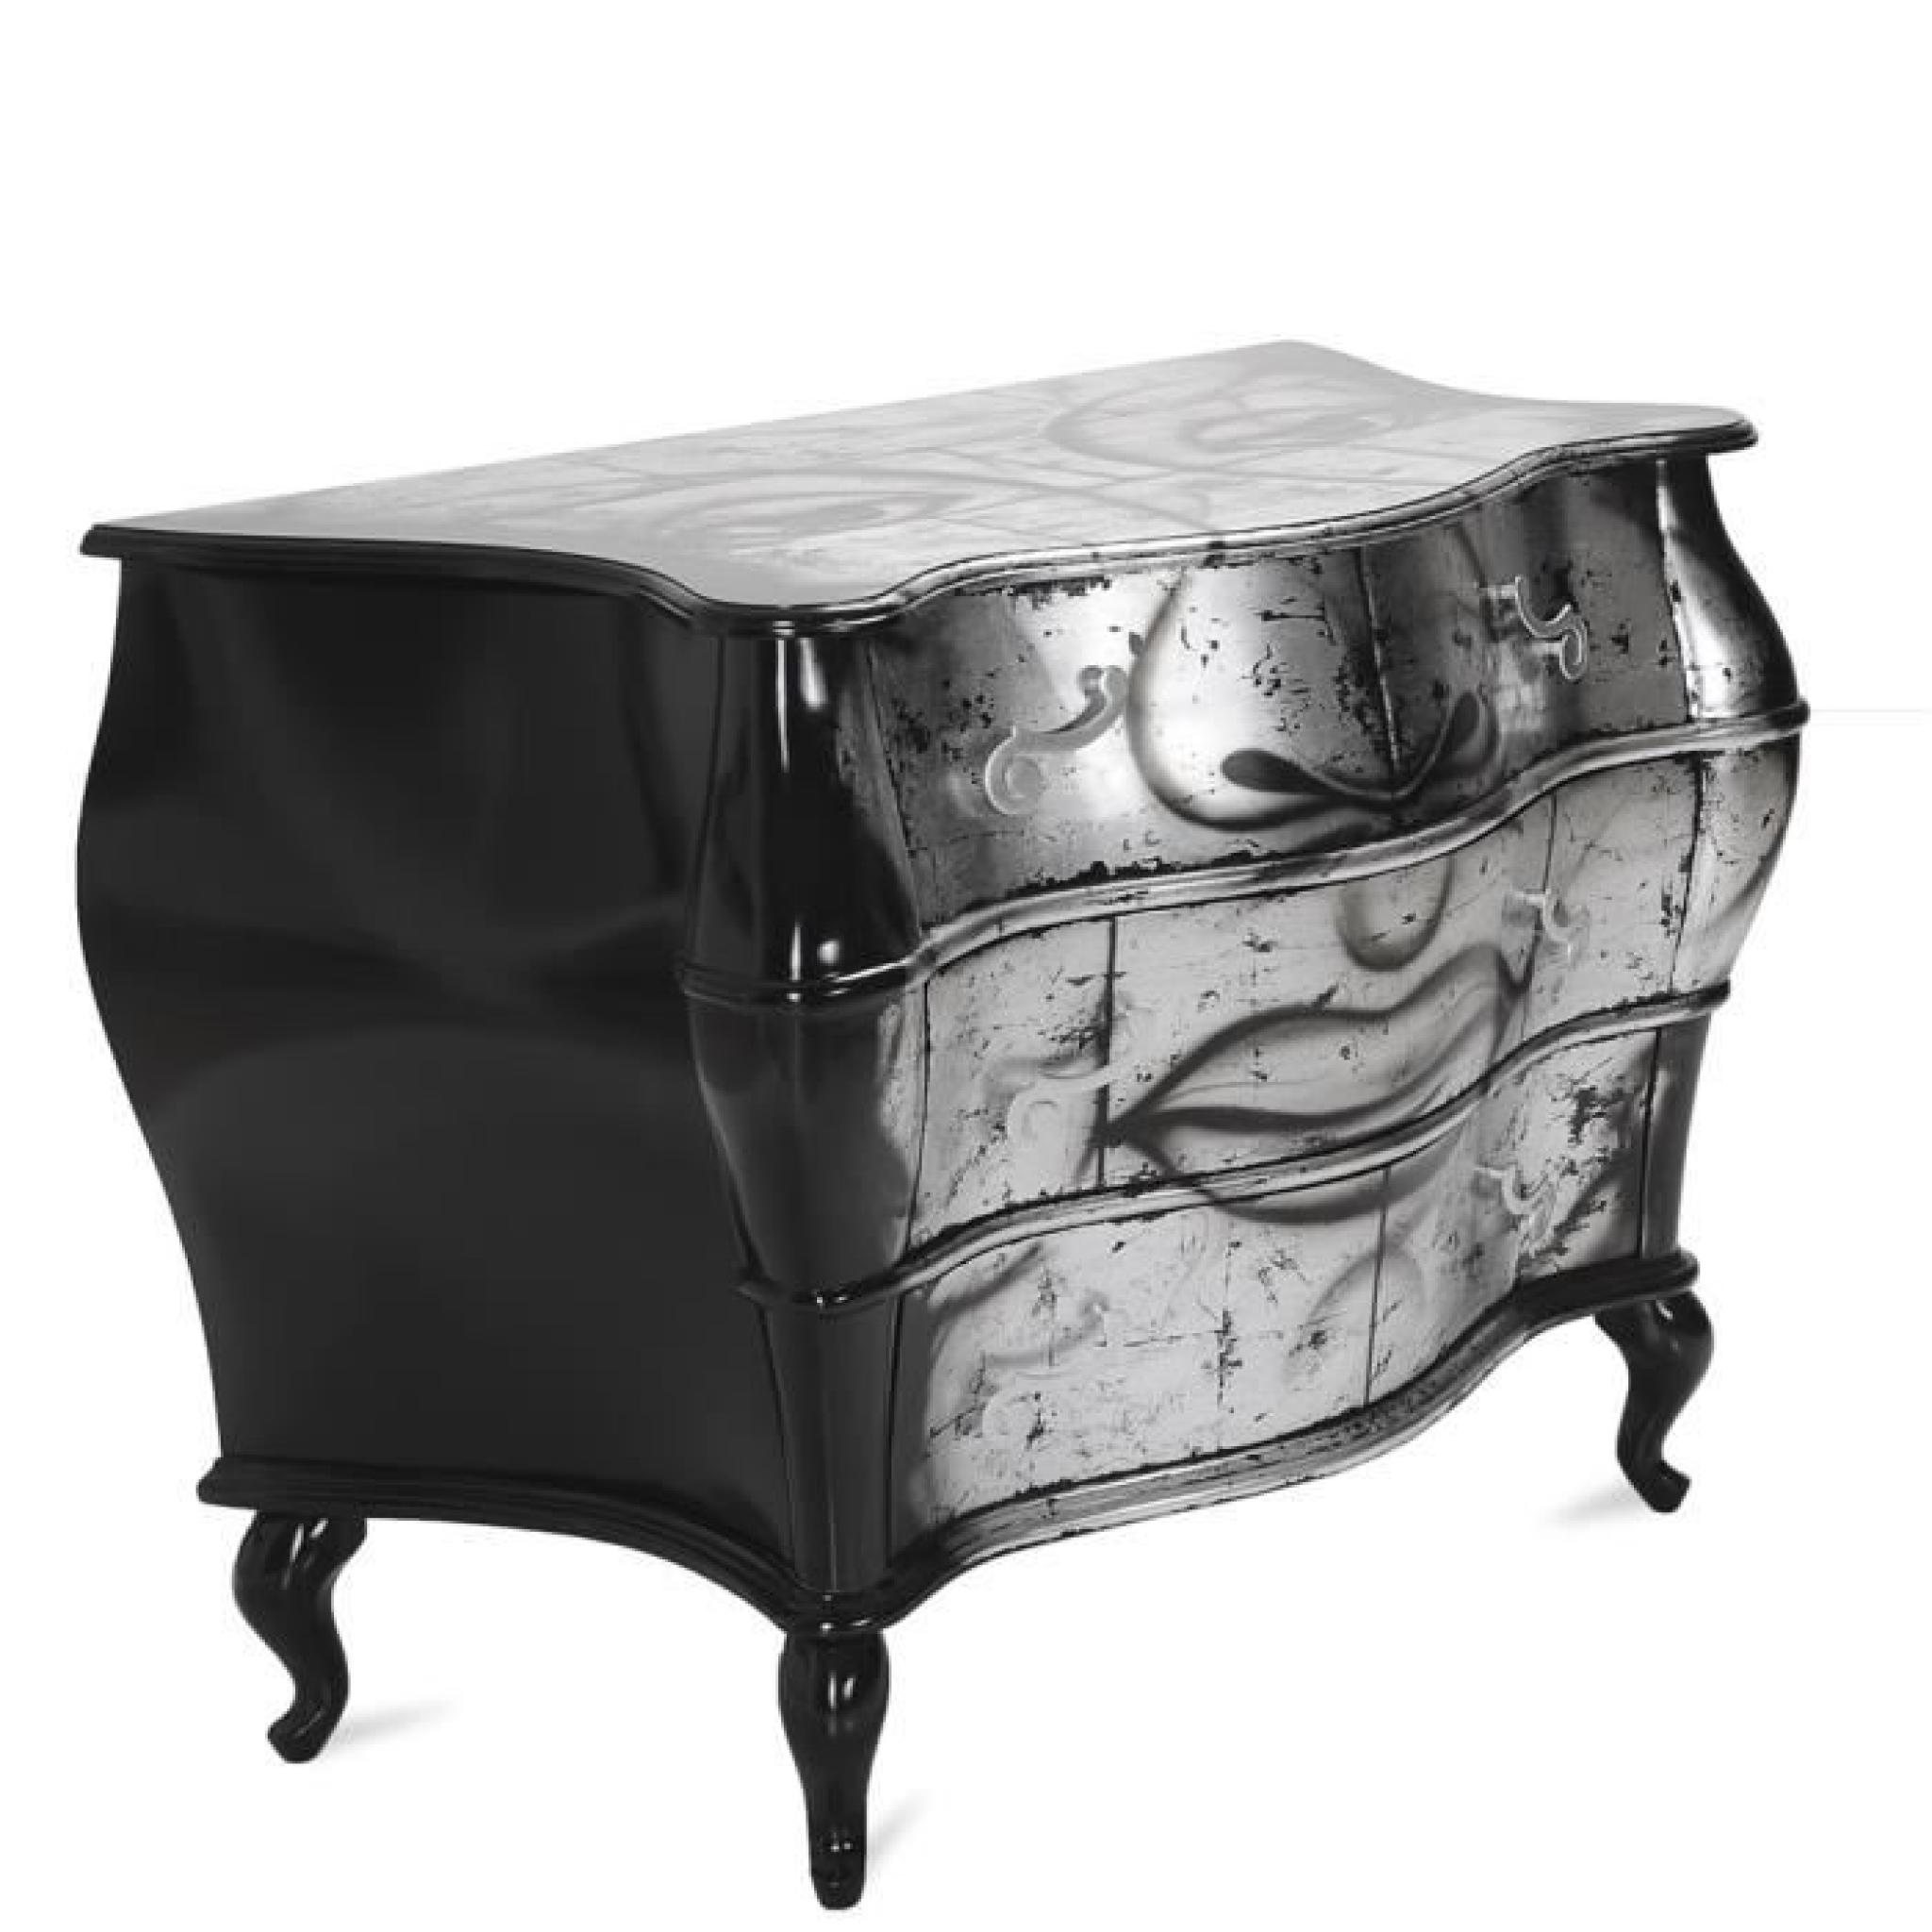 commode pomp 1 noir argent achat vente commode pas cher couleur et. Black Bedroom Furniture Sets. Home Design Ideas